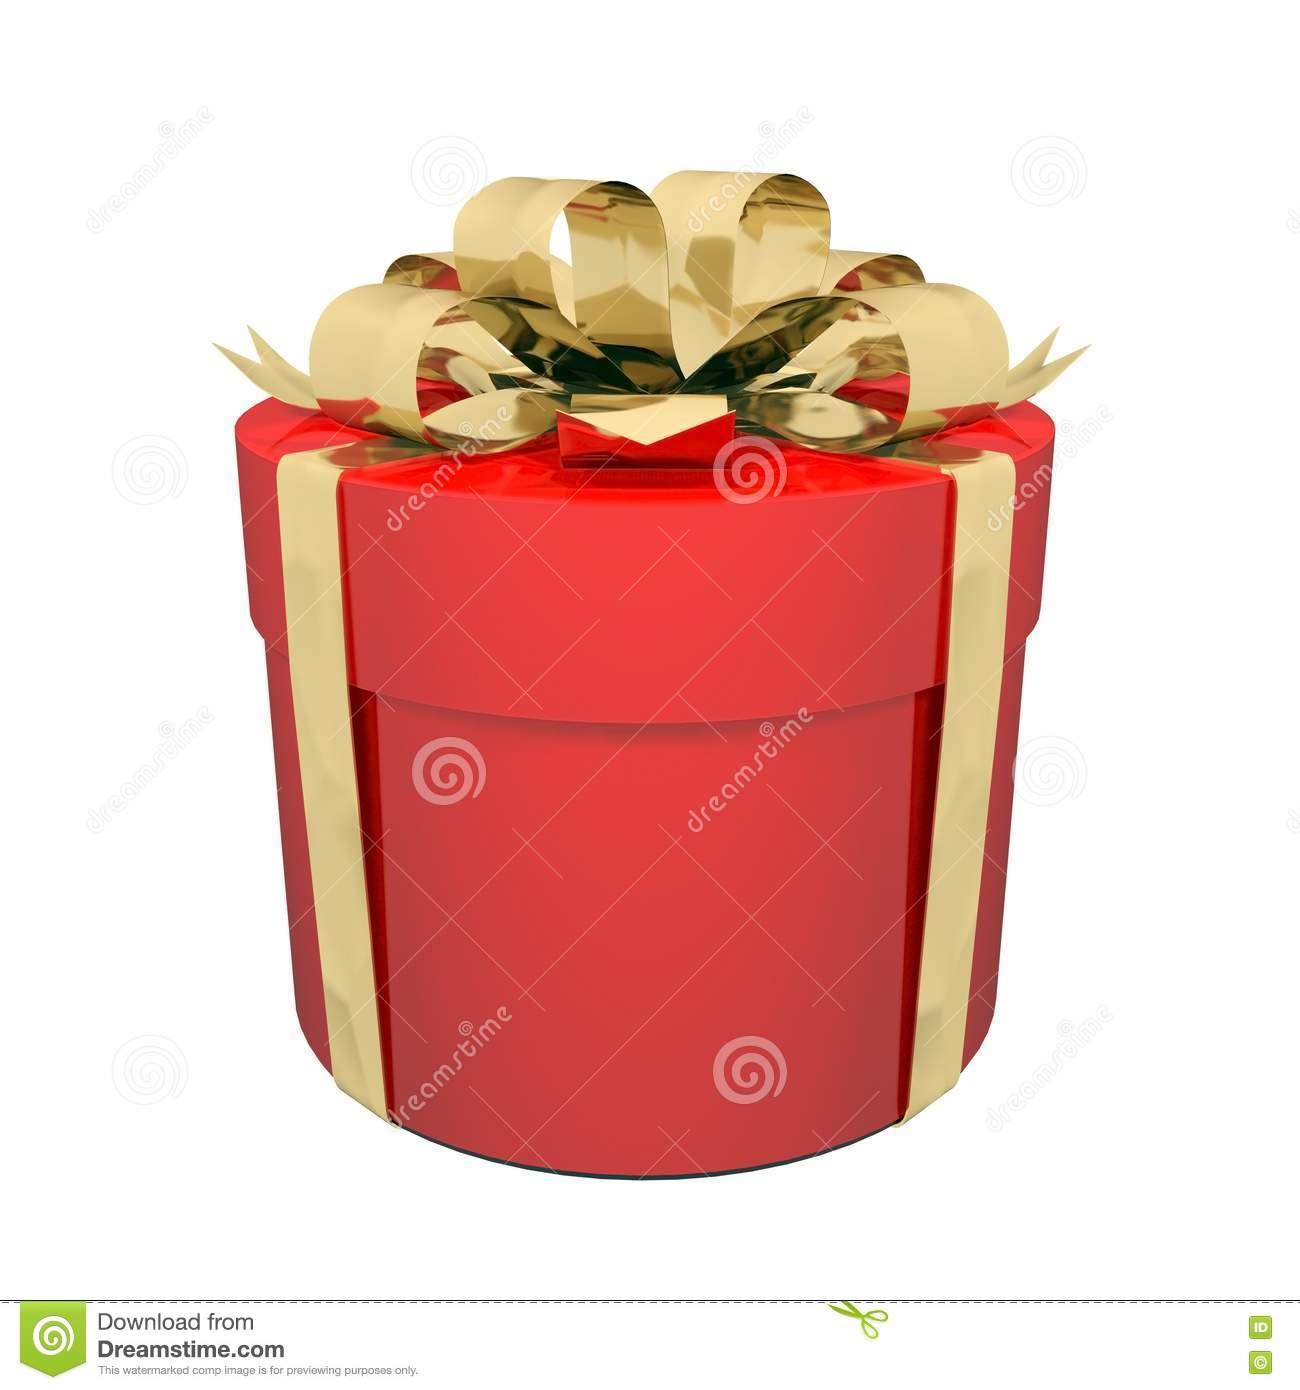 Beautiful gift box royalty free stock photography image - How to make beautiful gift box ...